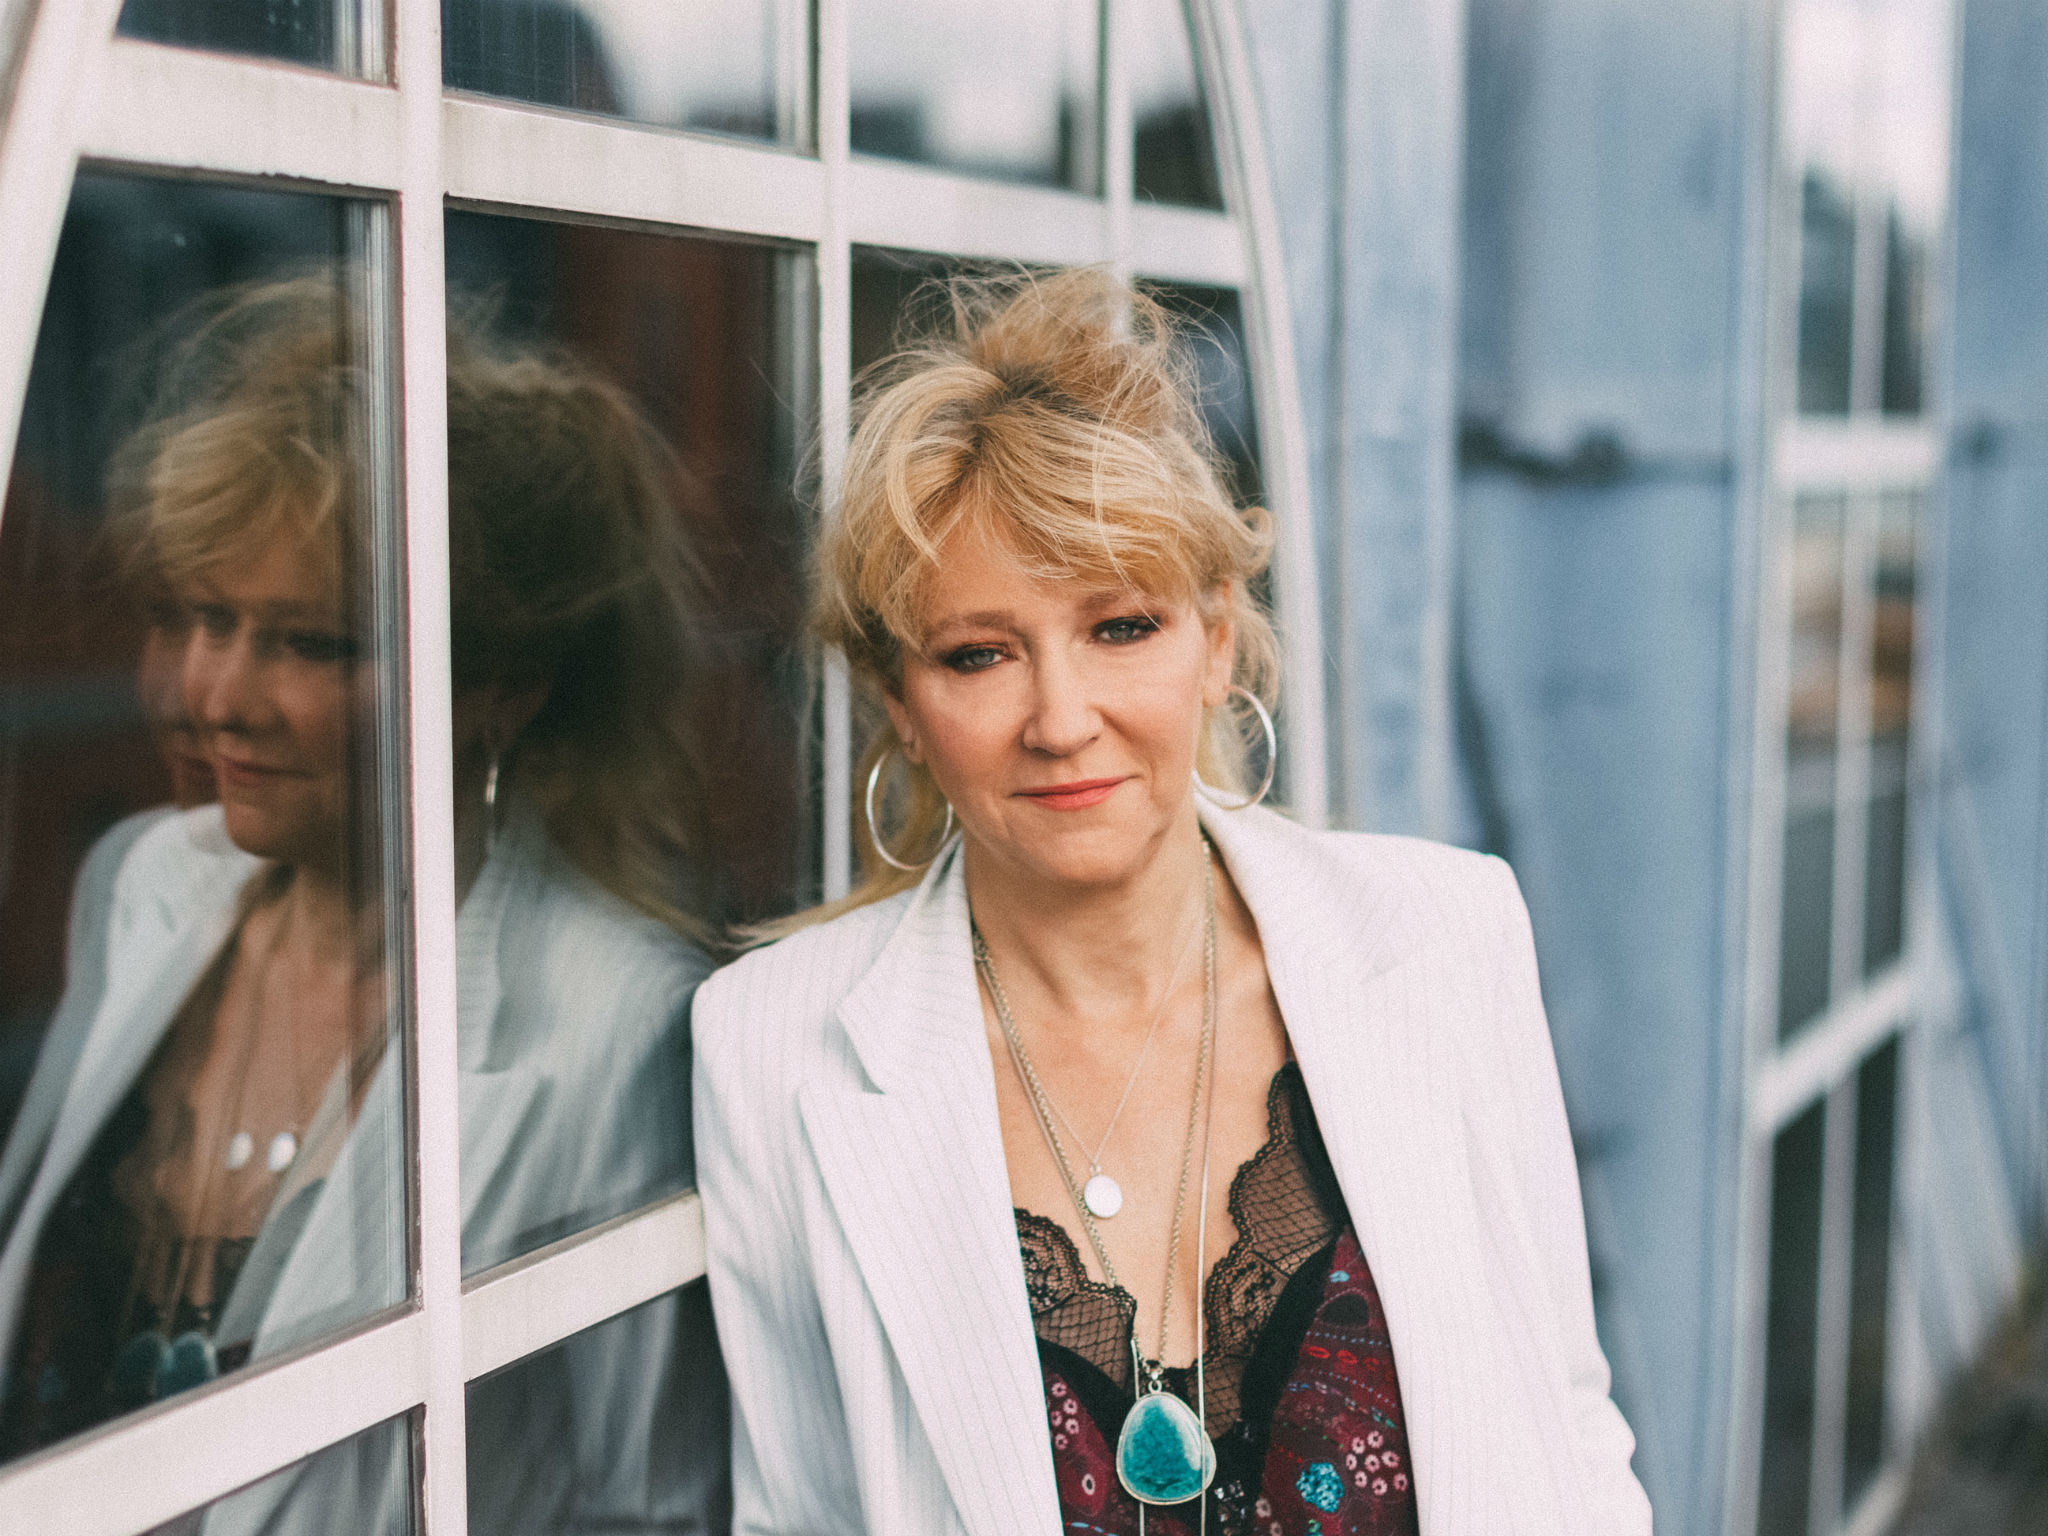 Sonia Friedman: 'We are going to find a way to do this and nobody is going to stop us'